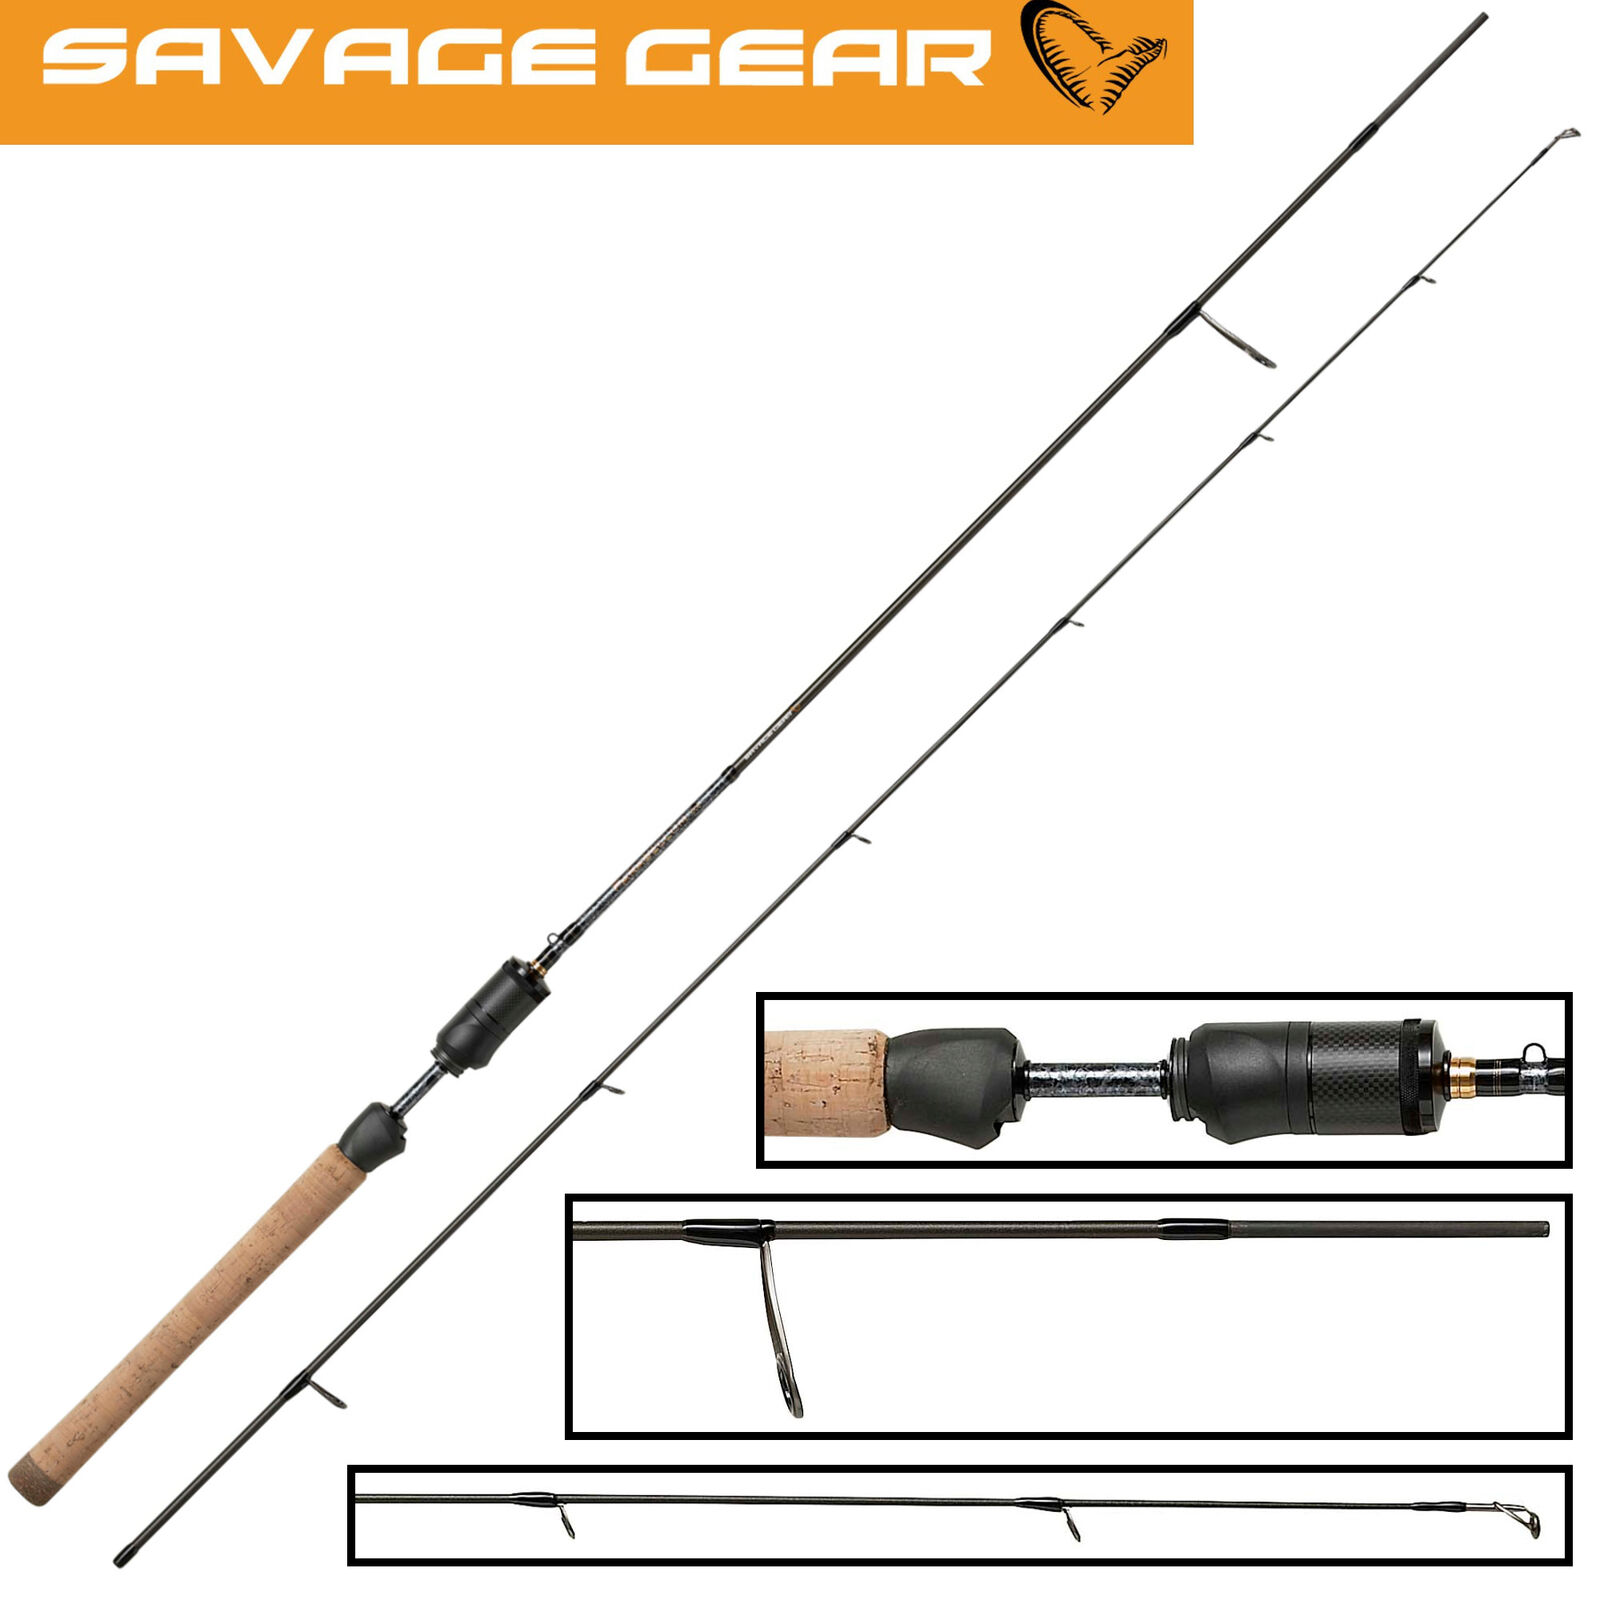 Savage Gear Parabellum CCS UL 1,85m 1-5g - Ultra Light Rute, Barschrute